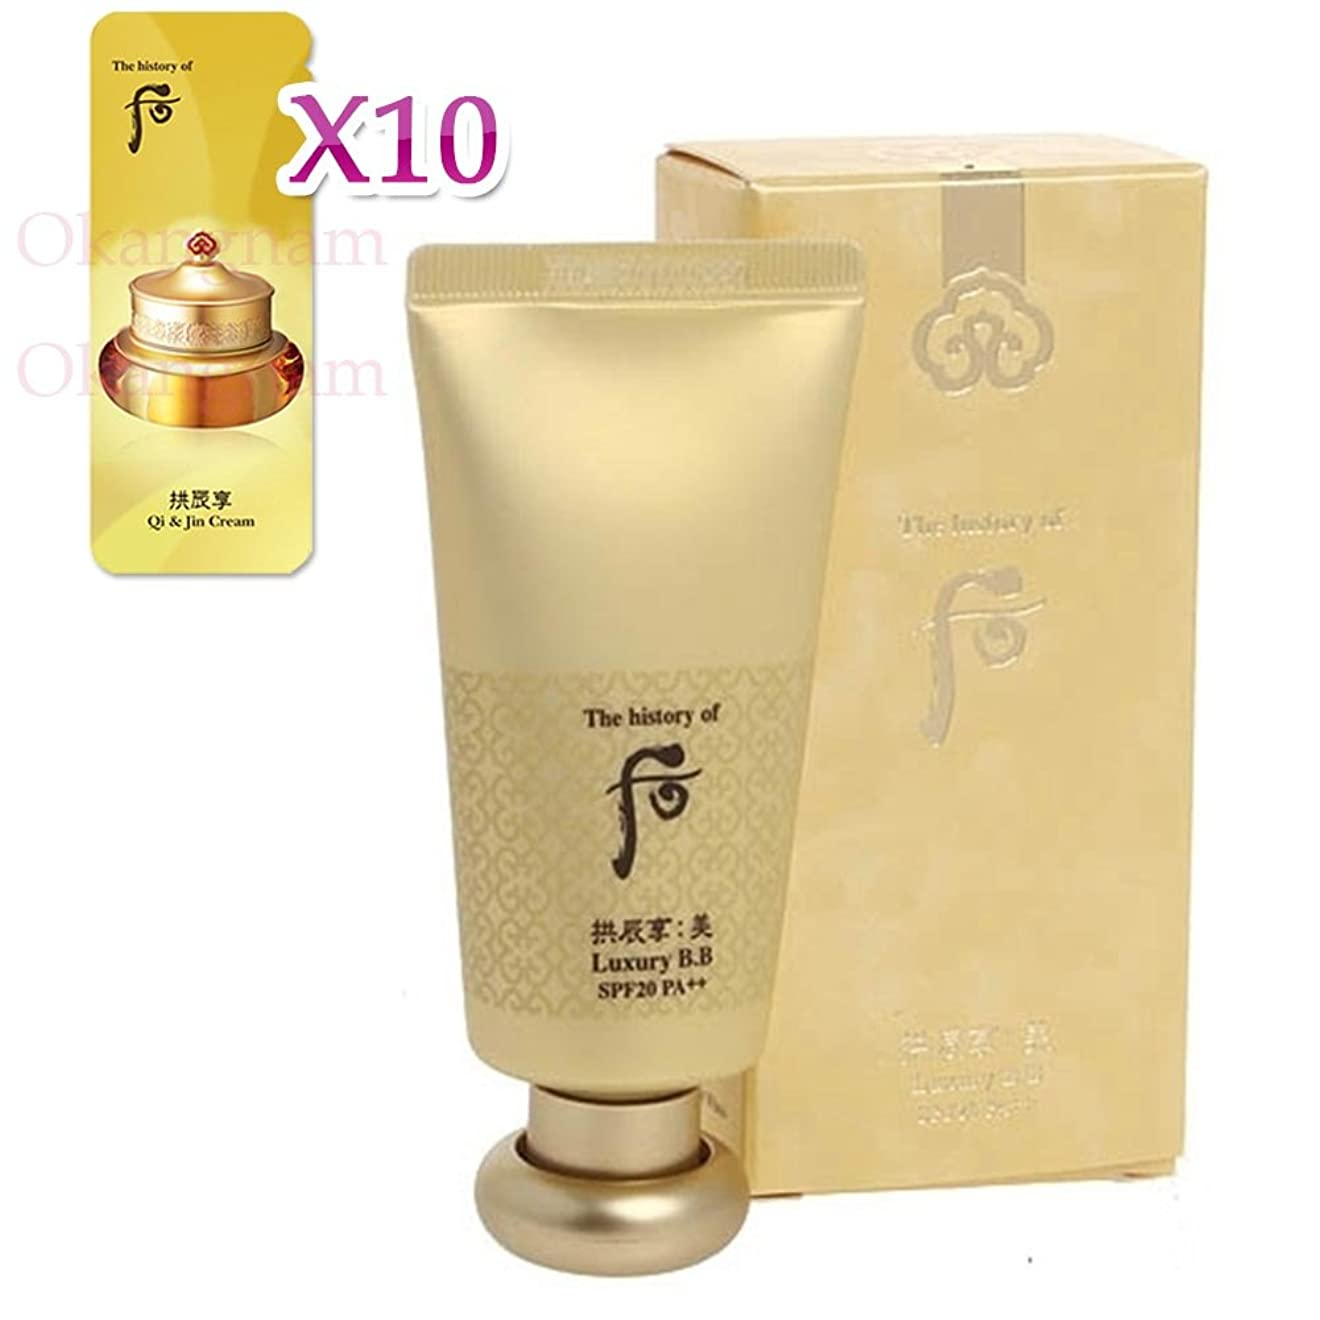 【フー/The history of whoo] Whoo 后 KGM07 GONGJIN HYANG Mi Luxury BB Cream/后(フー) ゴンジンヒャン 美 ラグジュアリーBB45ml + [Sample Gift](海外直送品)